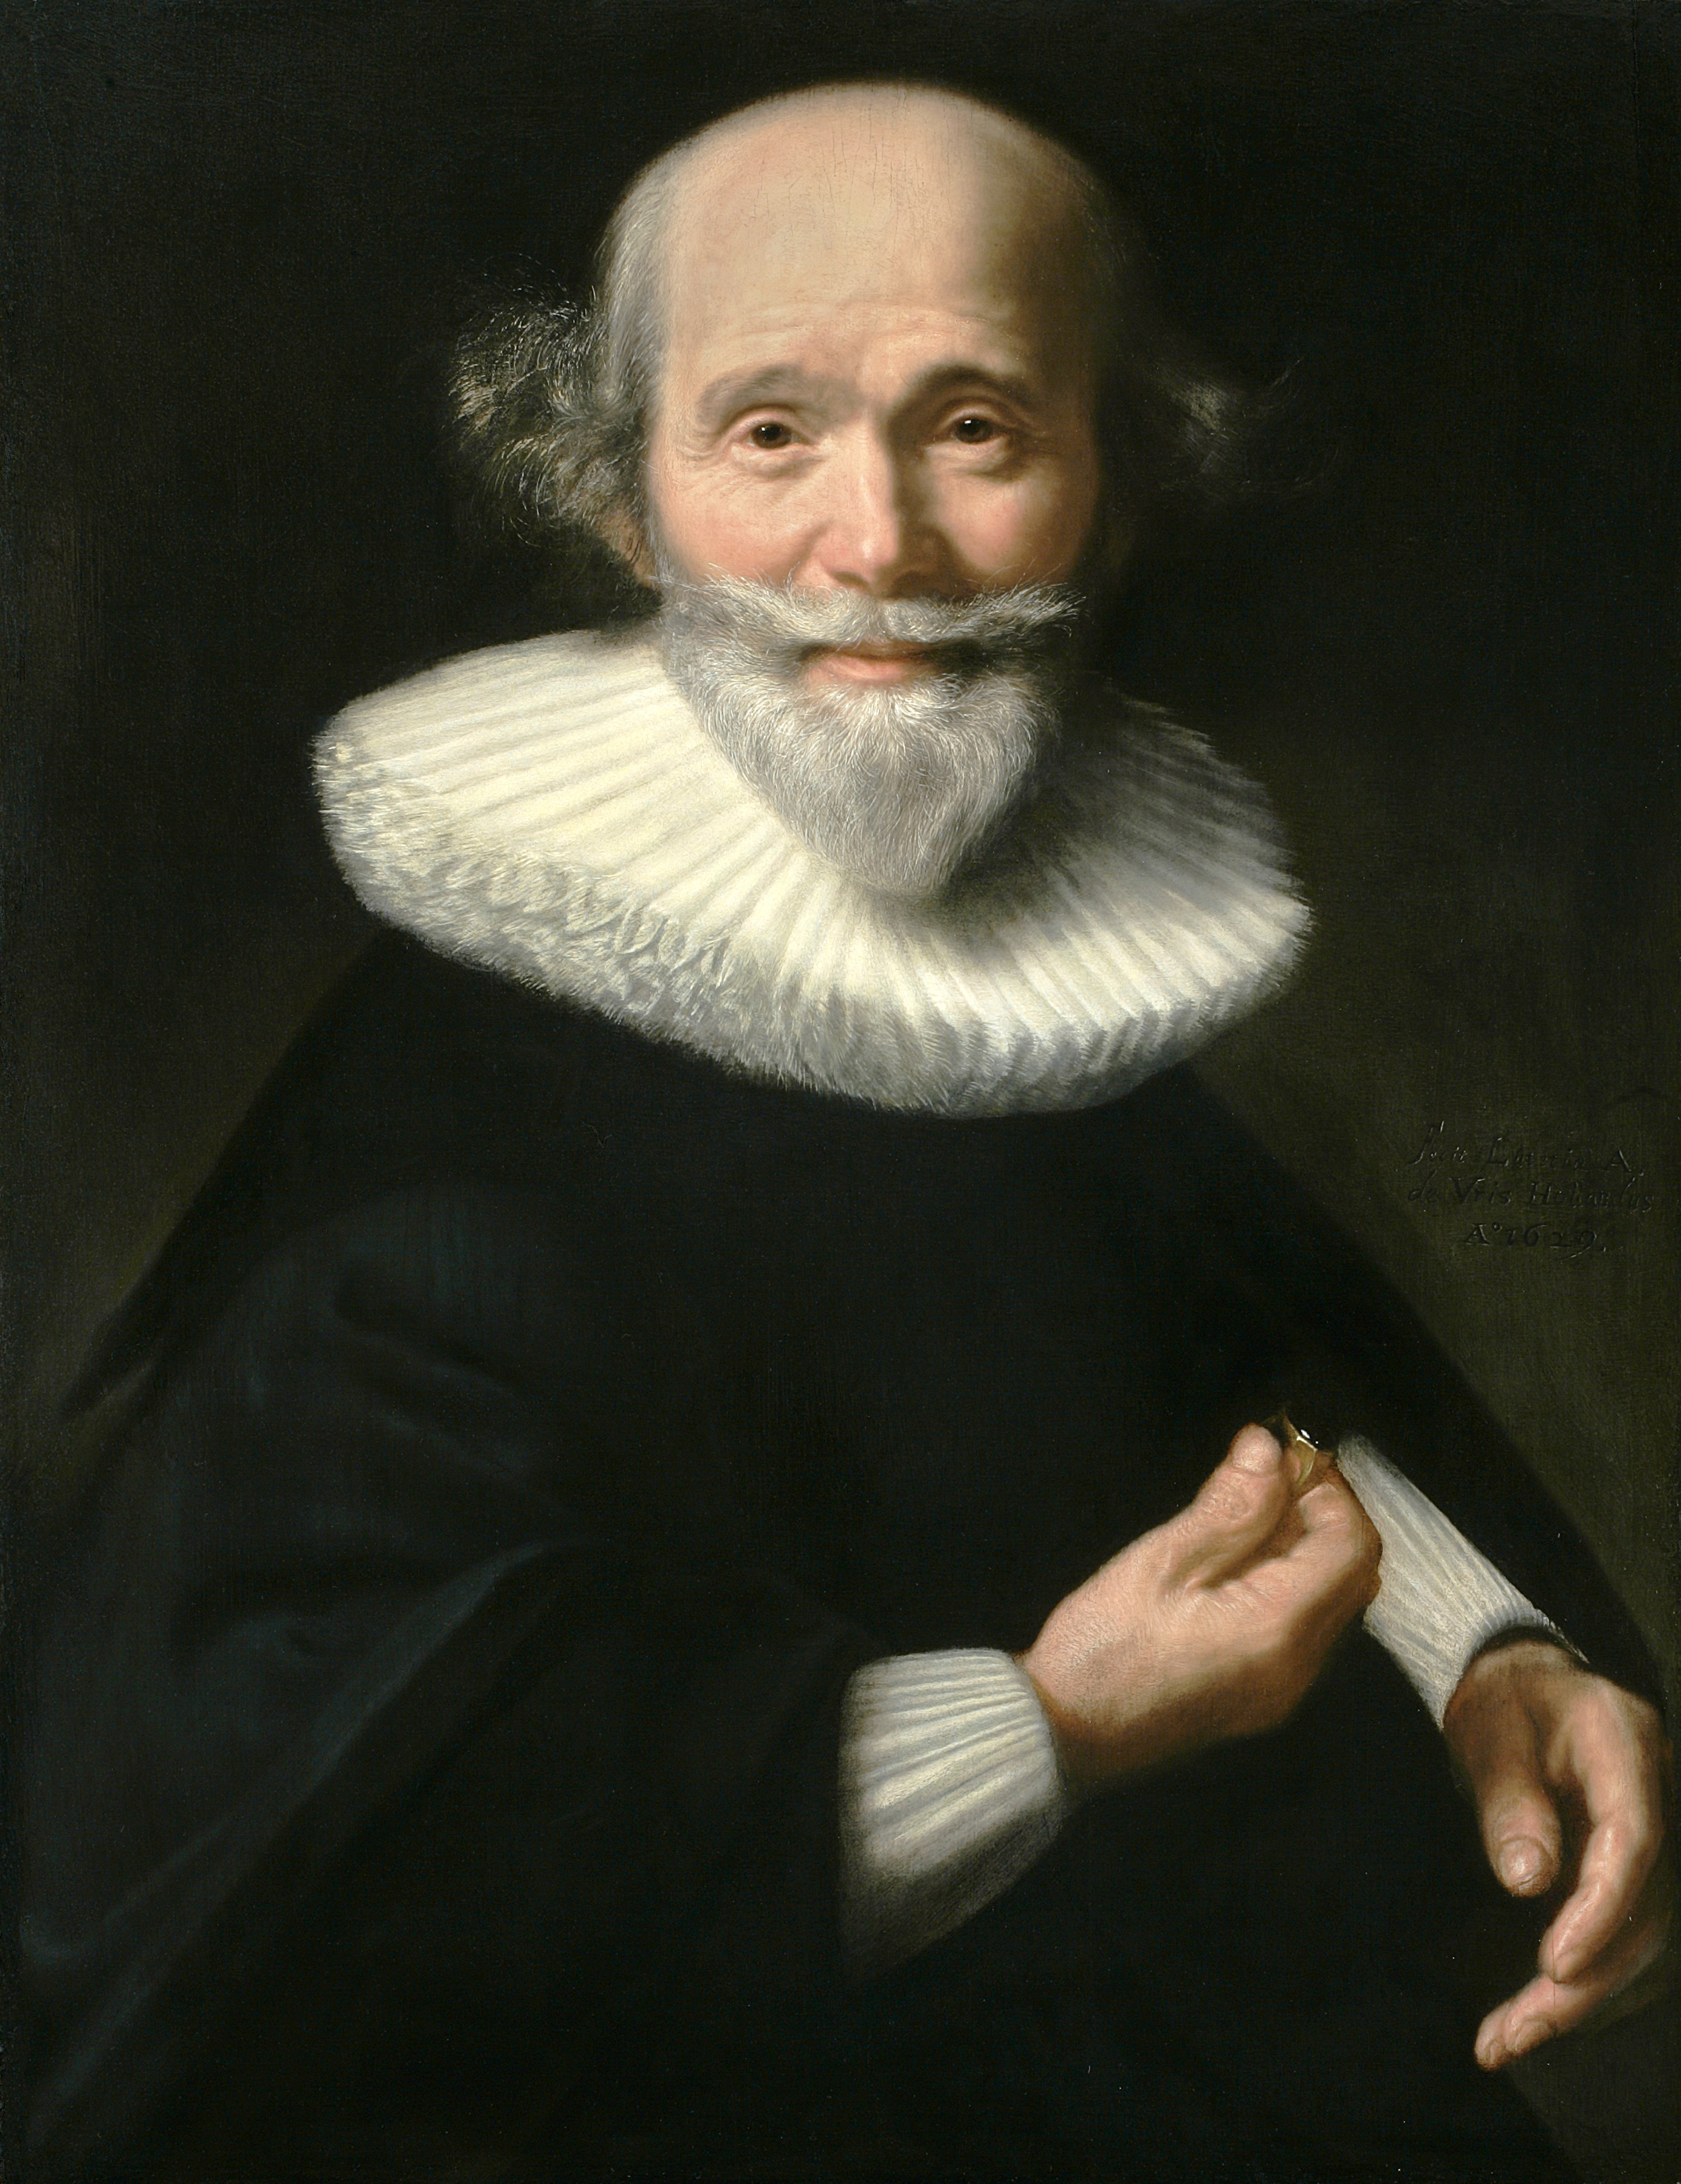 Abraham de Vries - Portrait of a man - PPP04980